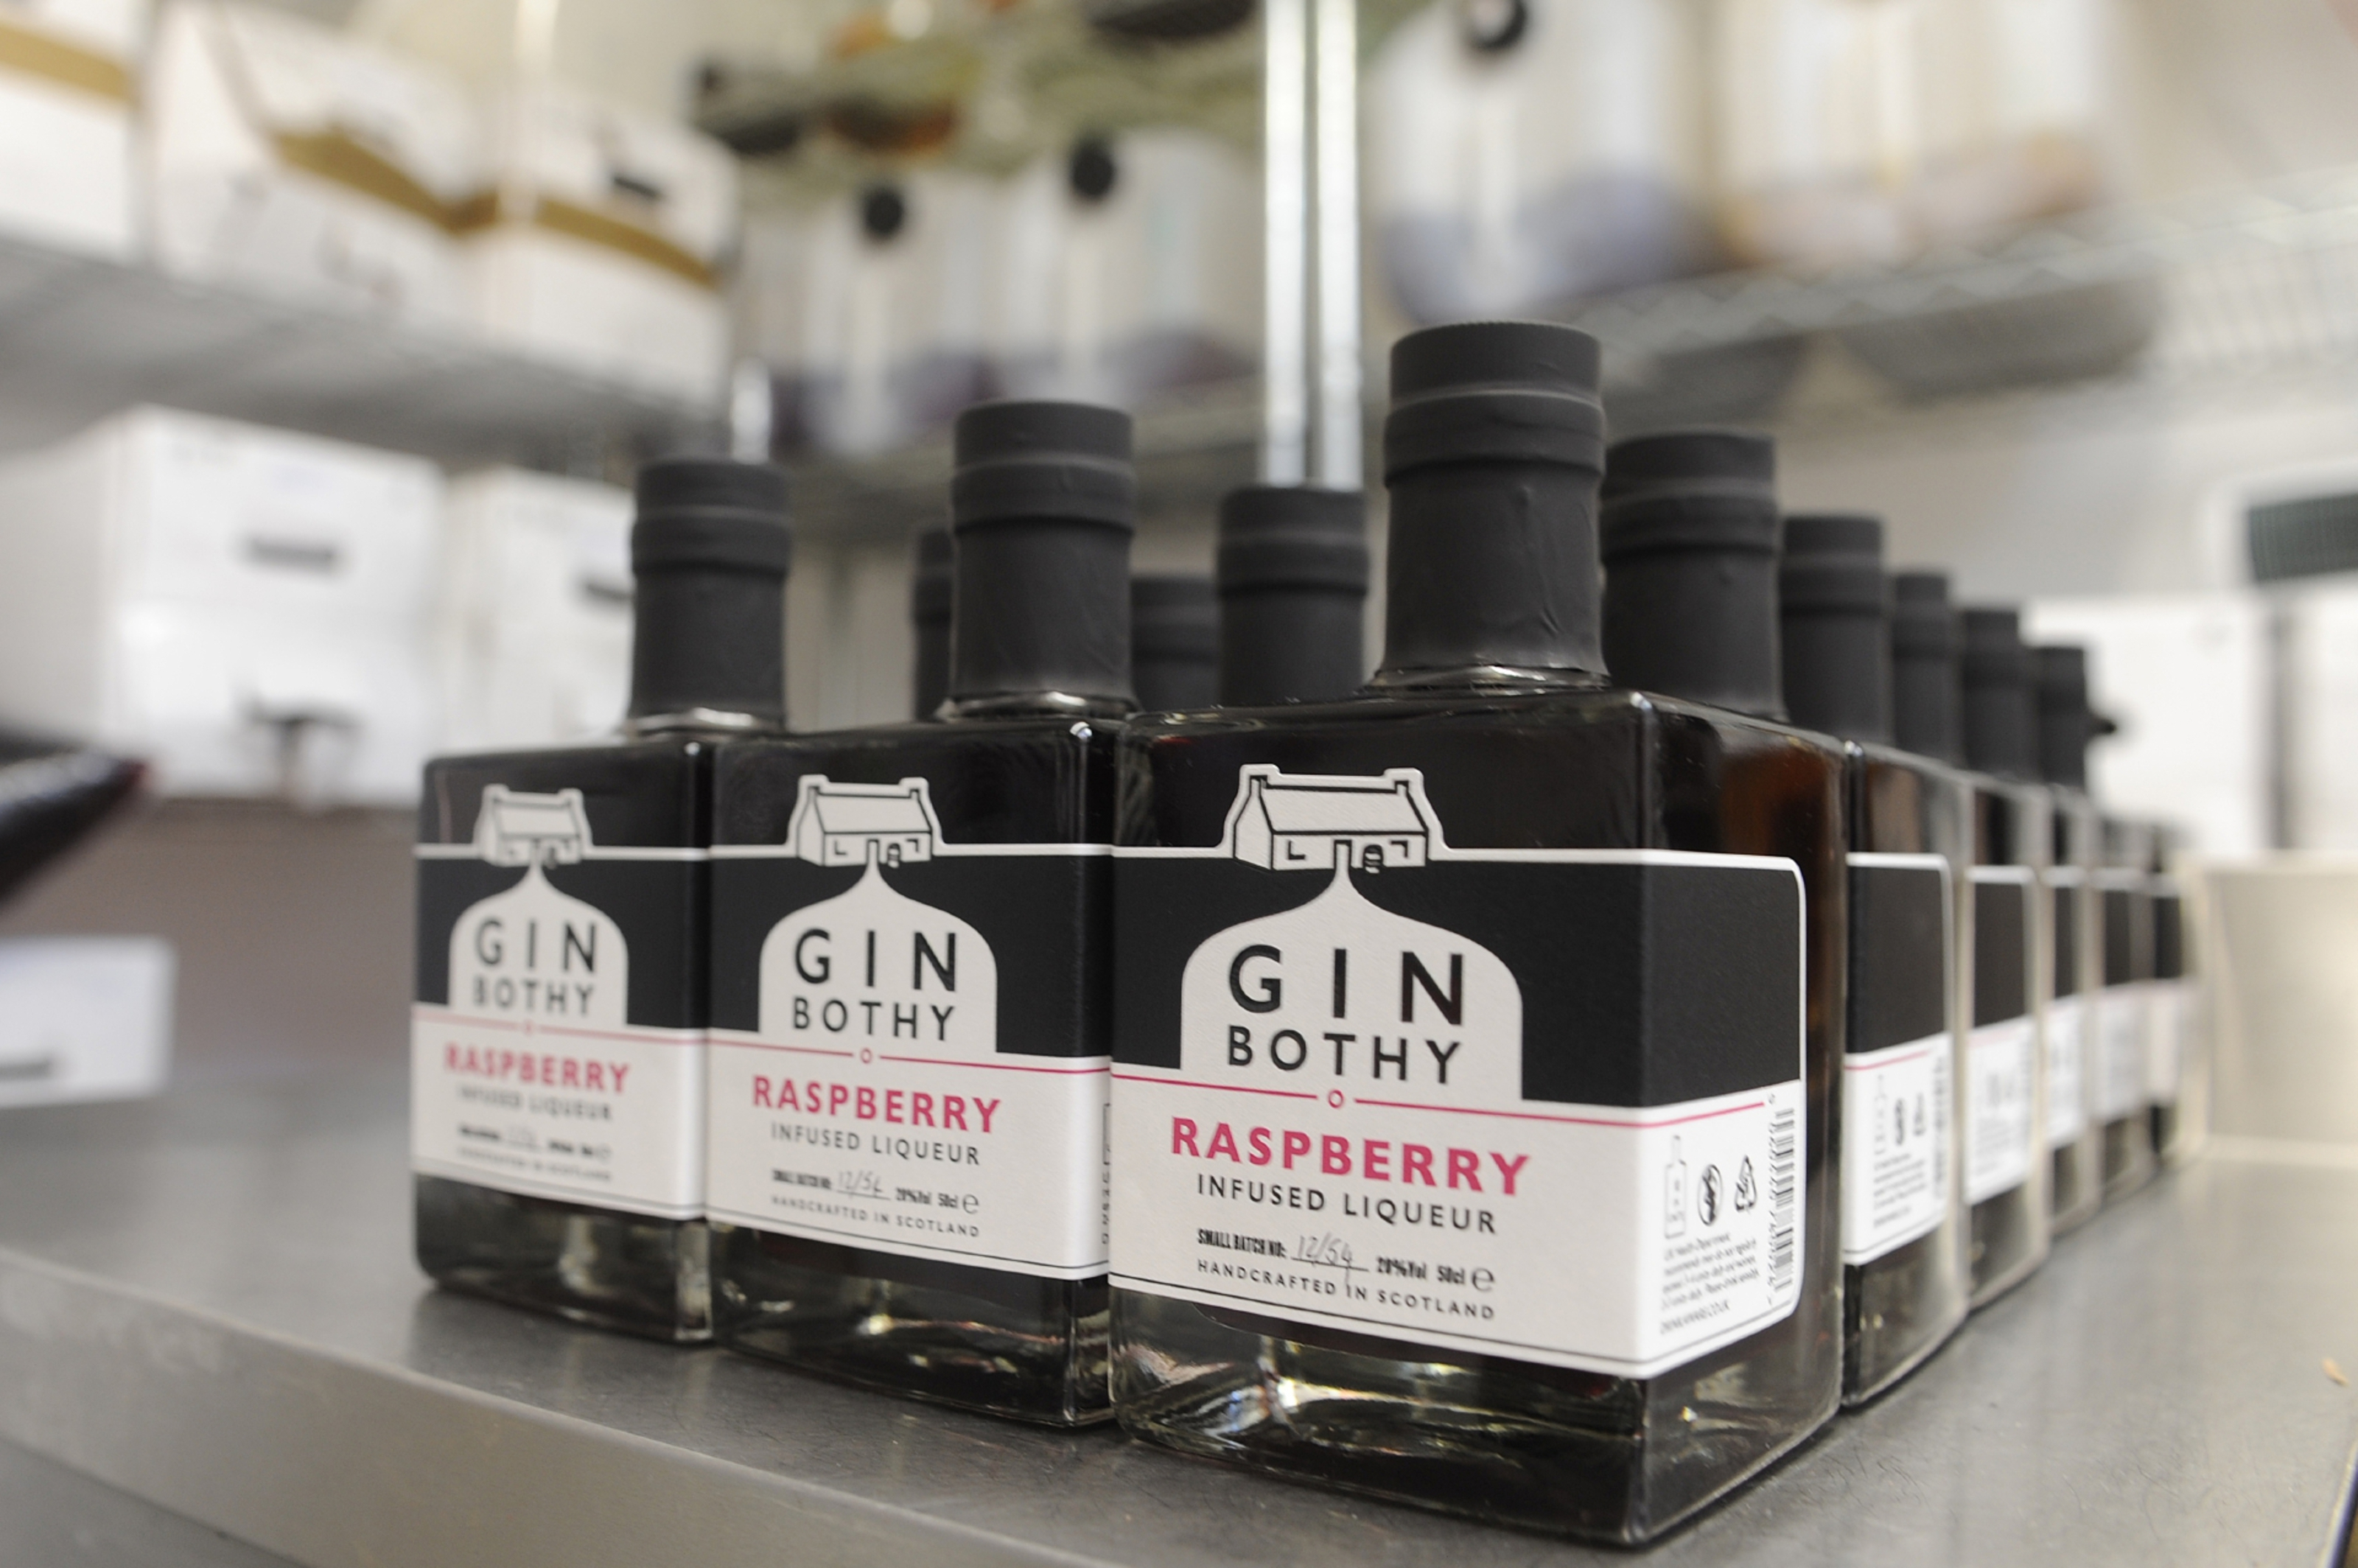 Gin lovers will be in heaven at the Gin Bothy!